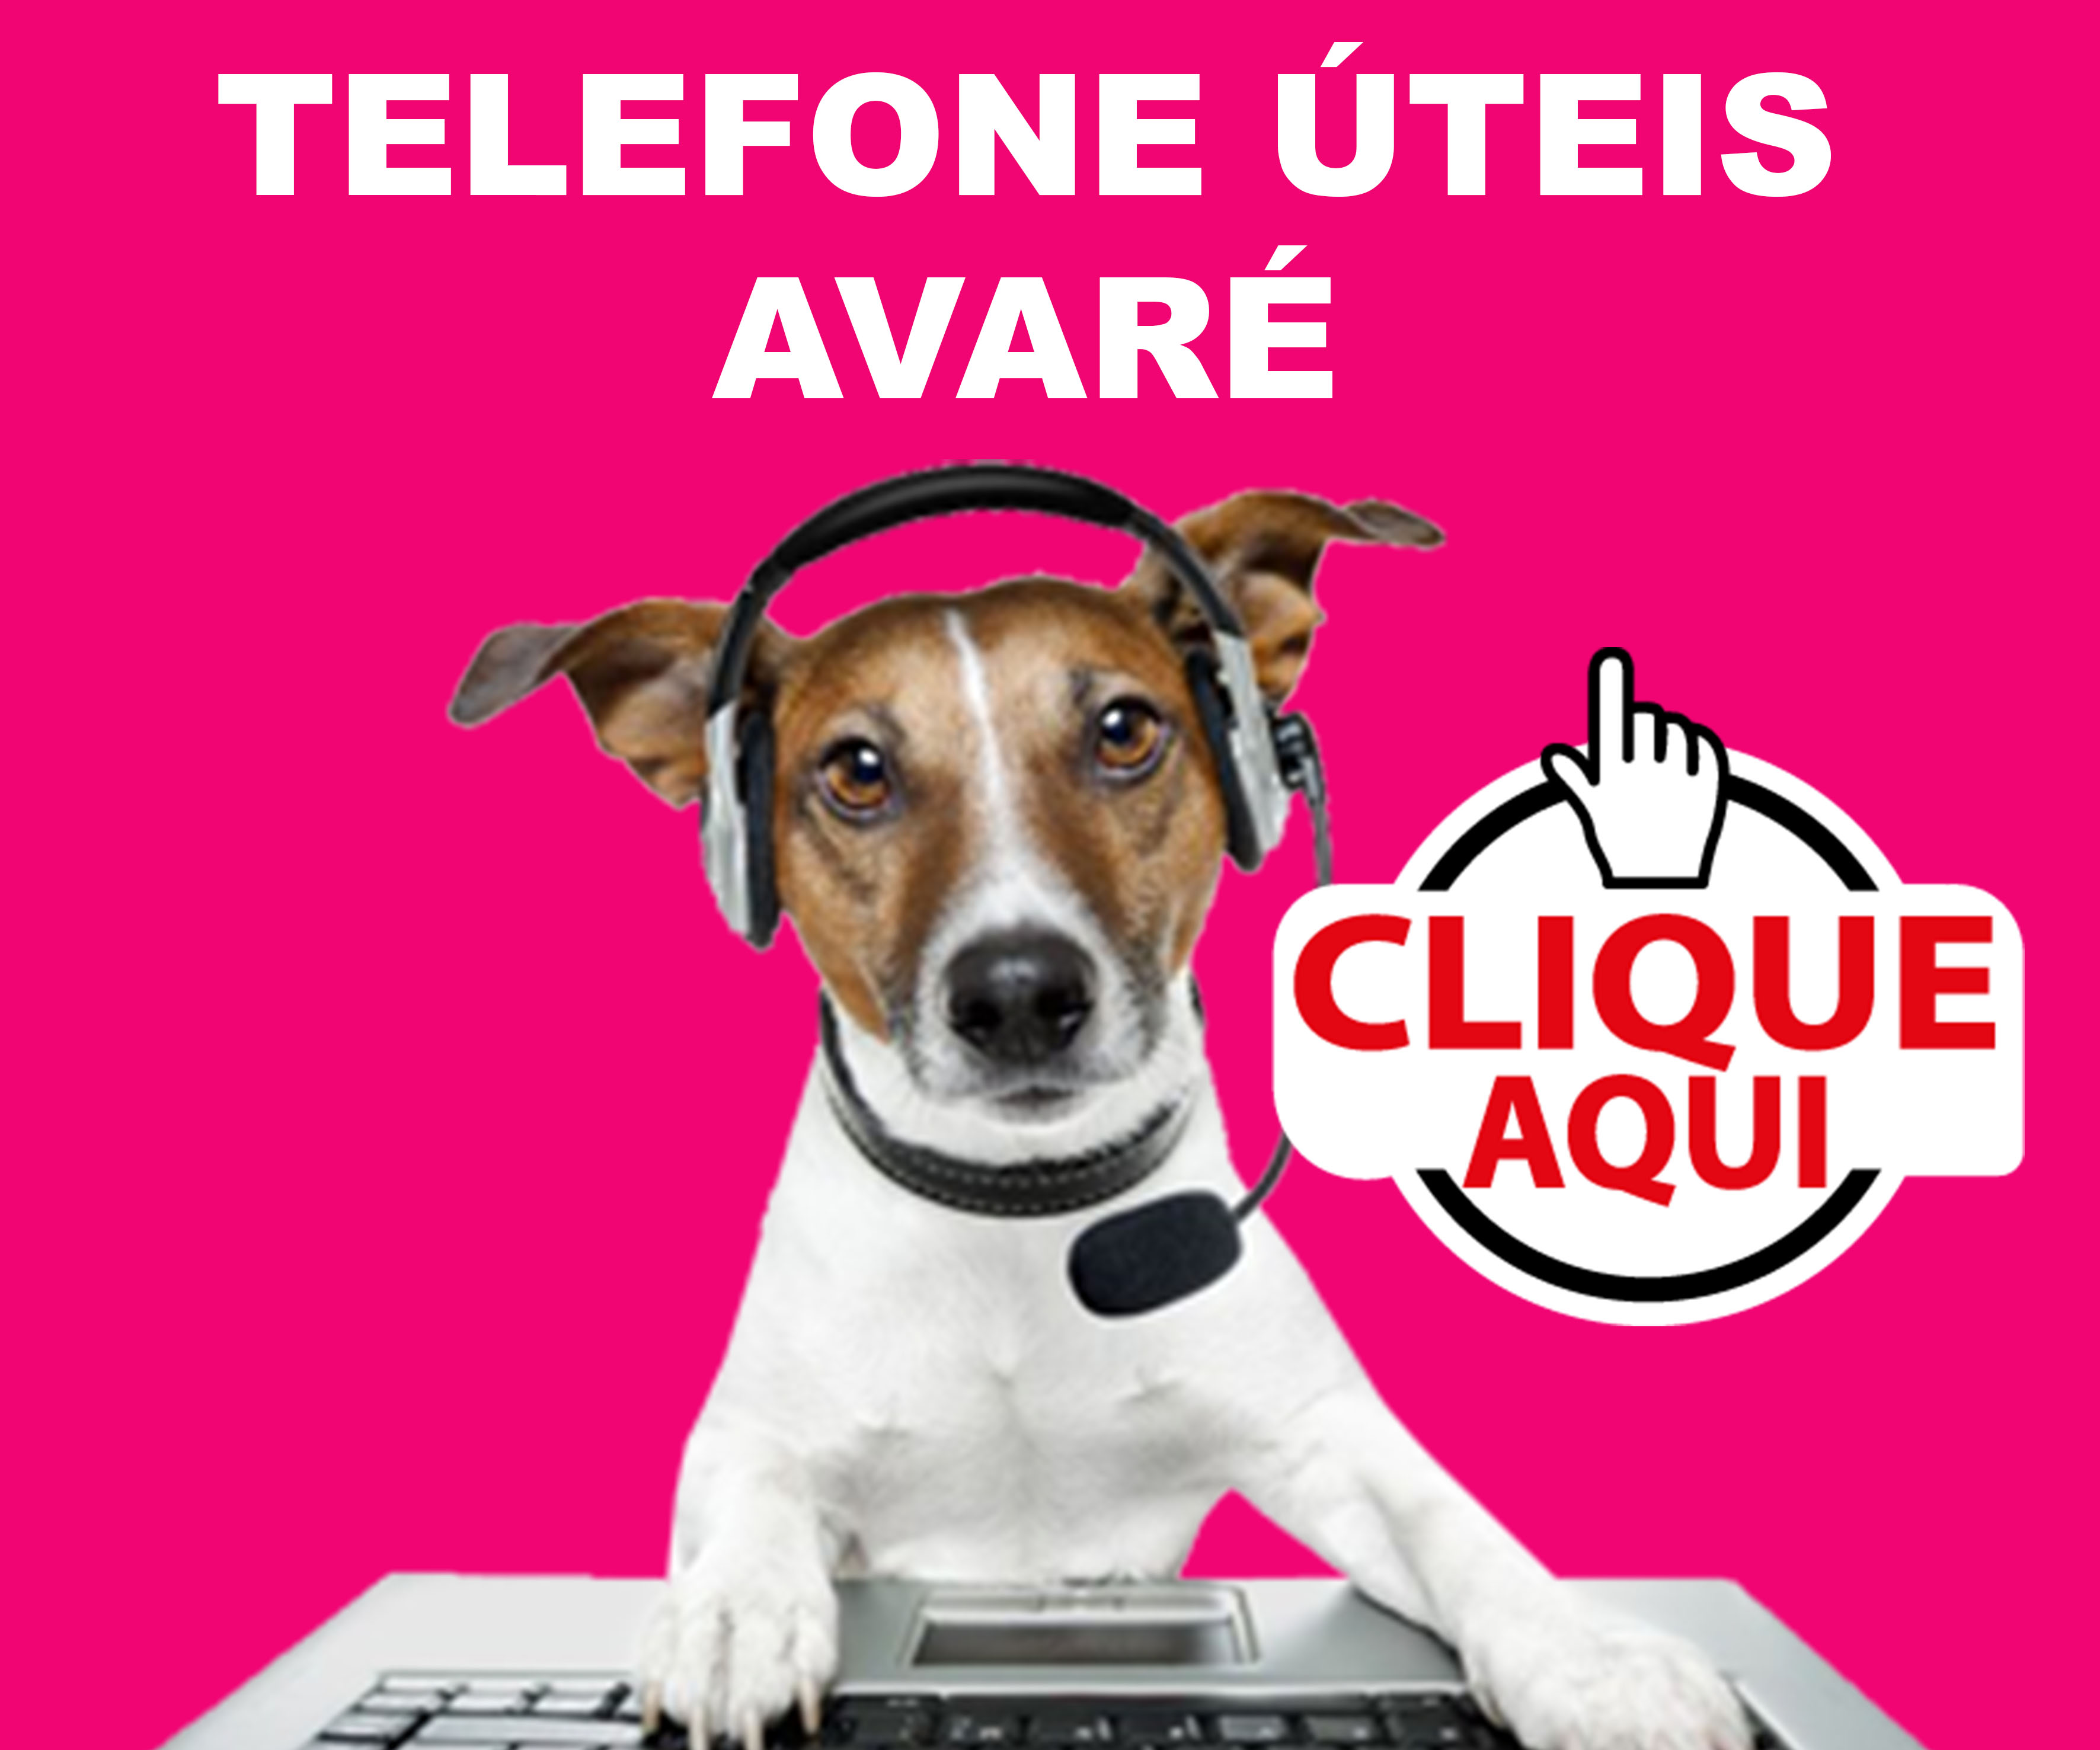 TELEFONE-UTEIS-AVARE-LATERAL